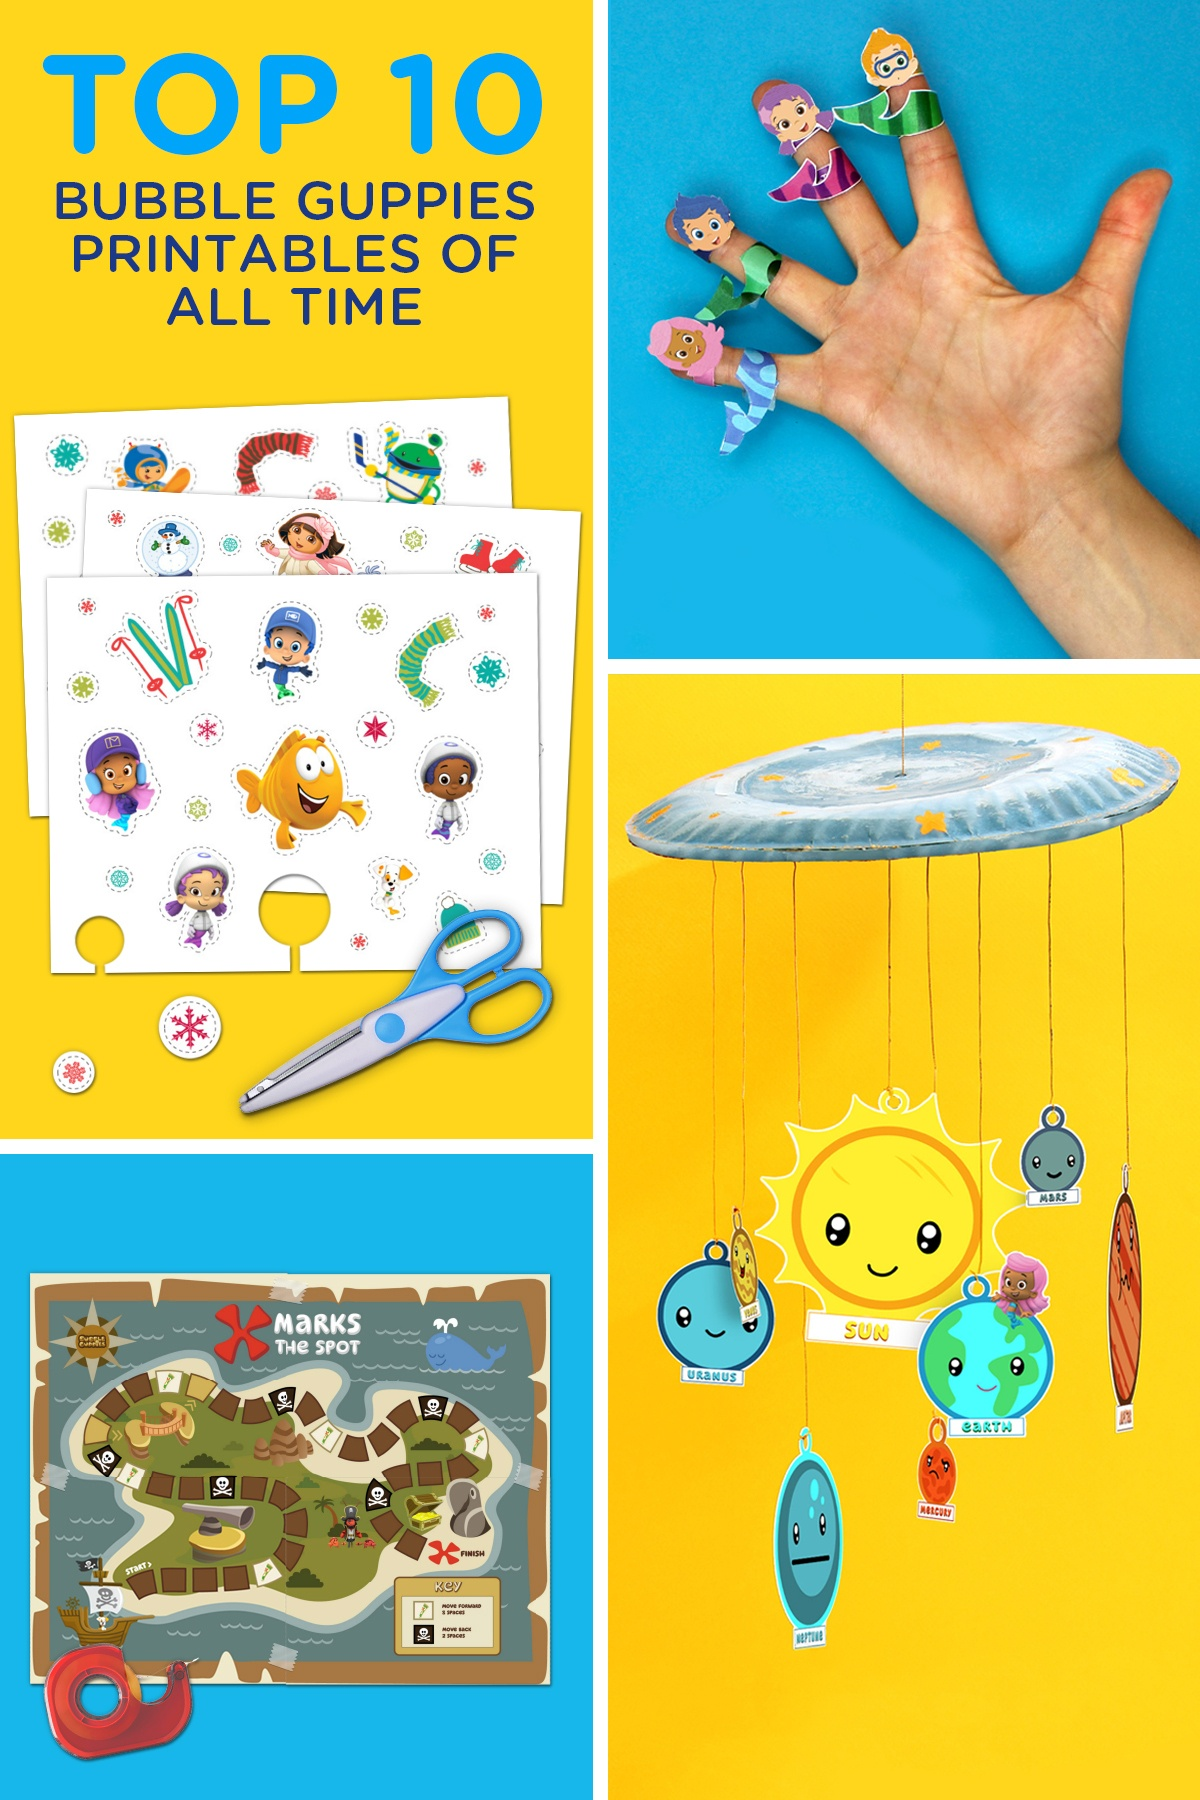 Top 10 Bubble Guppies Printables Of All Time | Nickelodeon Parents - Bubble Guppies Free Printables